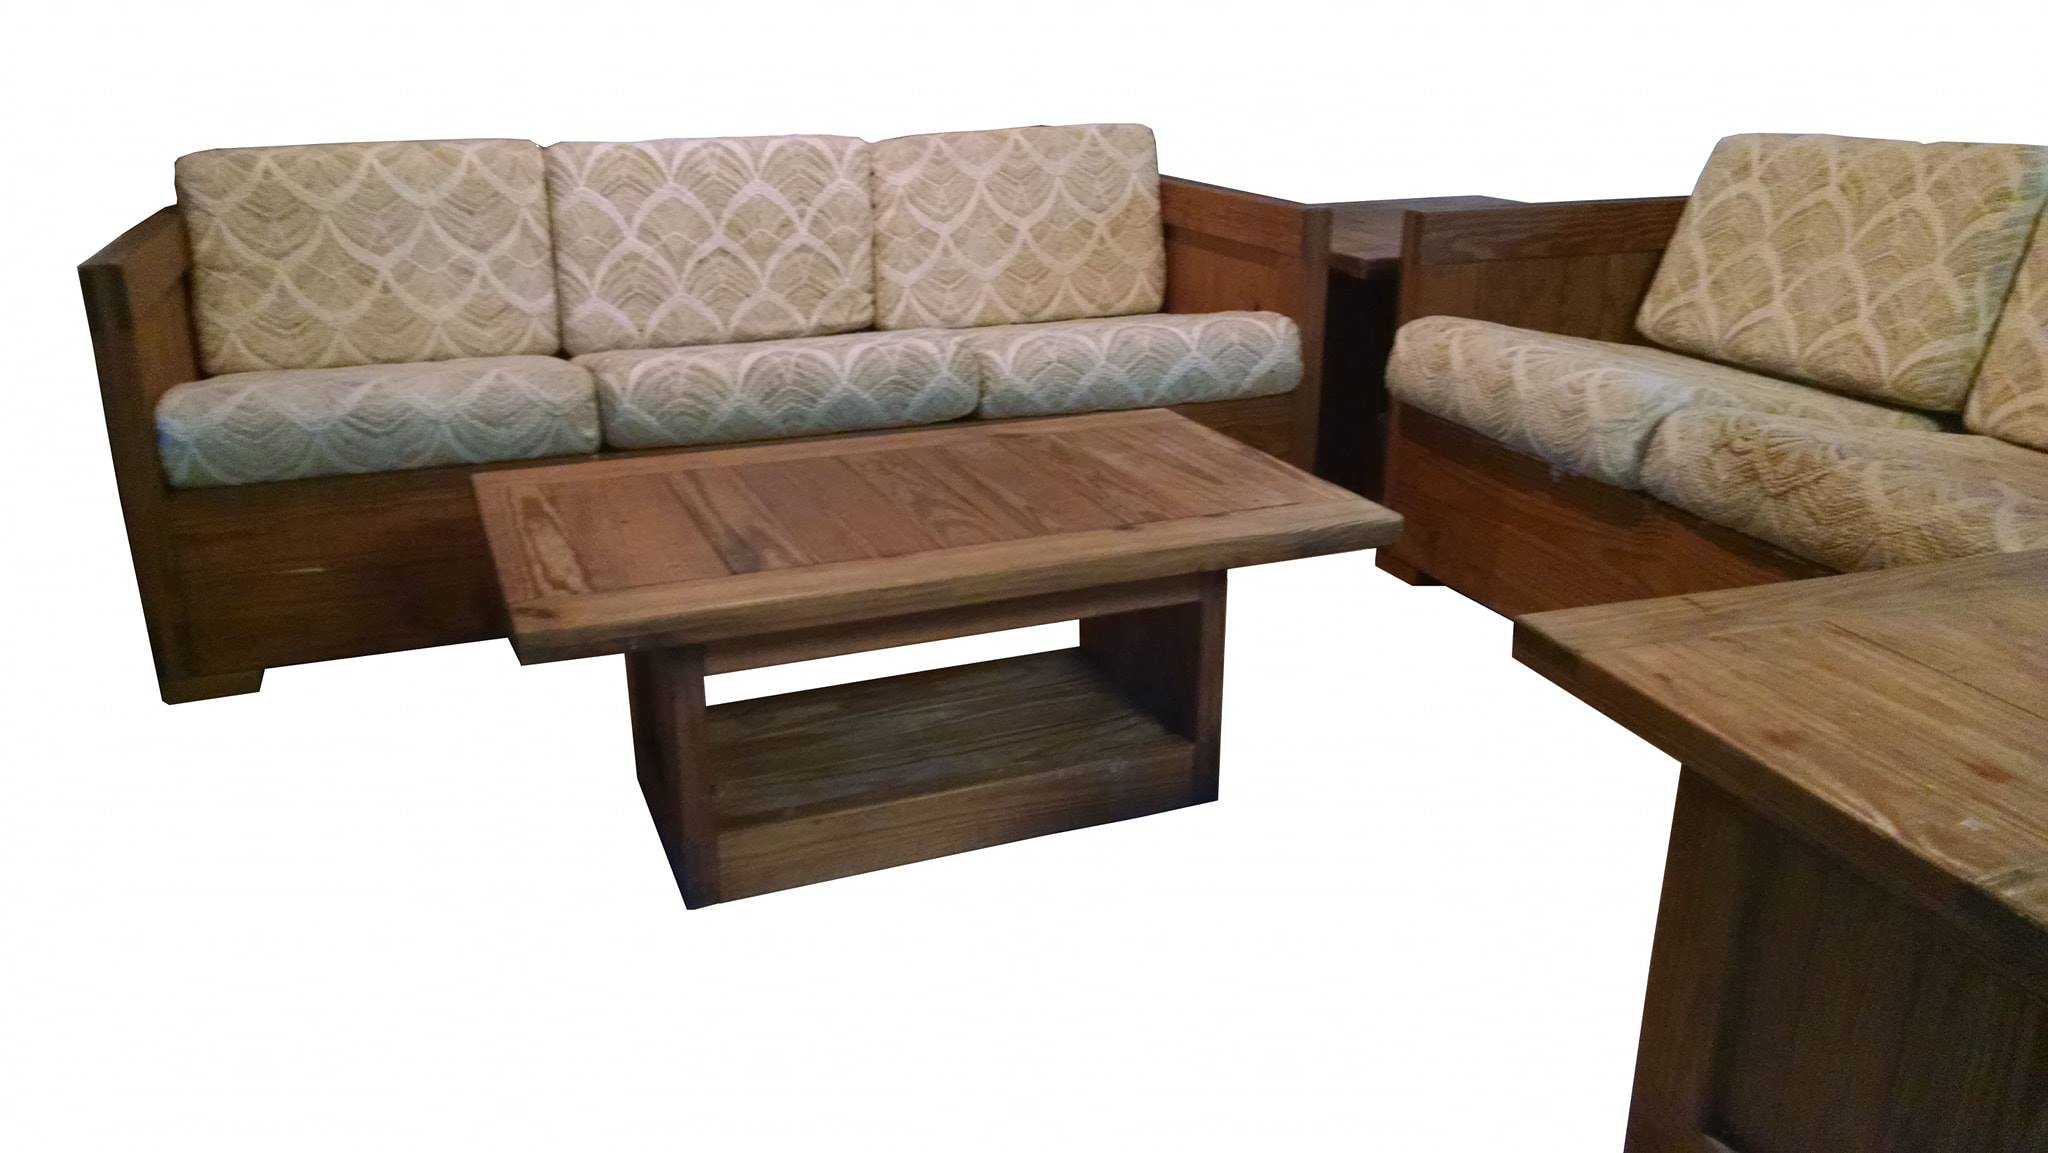 Wood sofa, love seat, sofa table & end tables